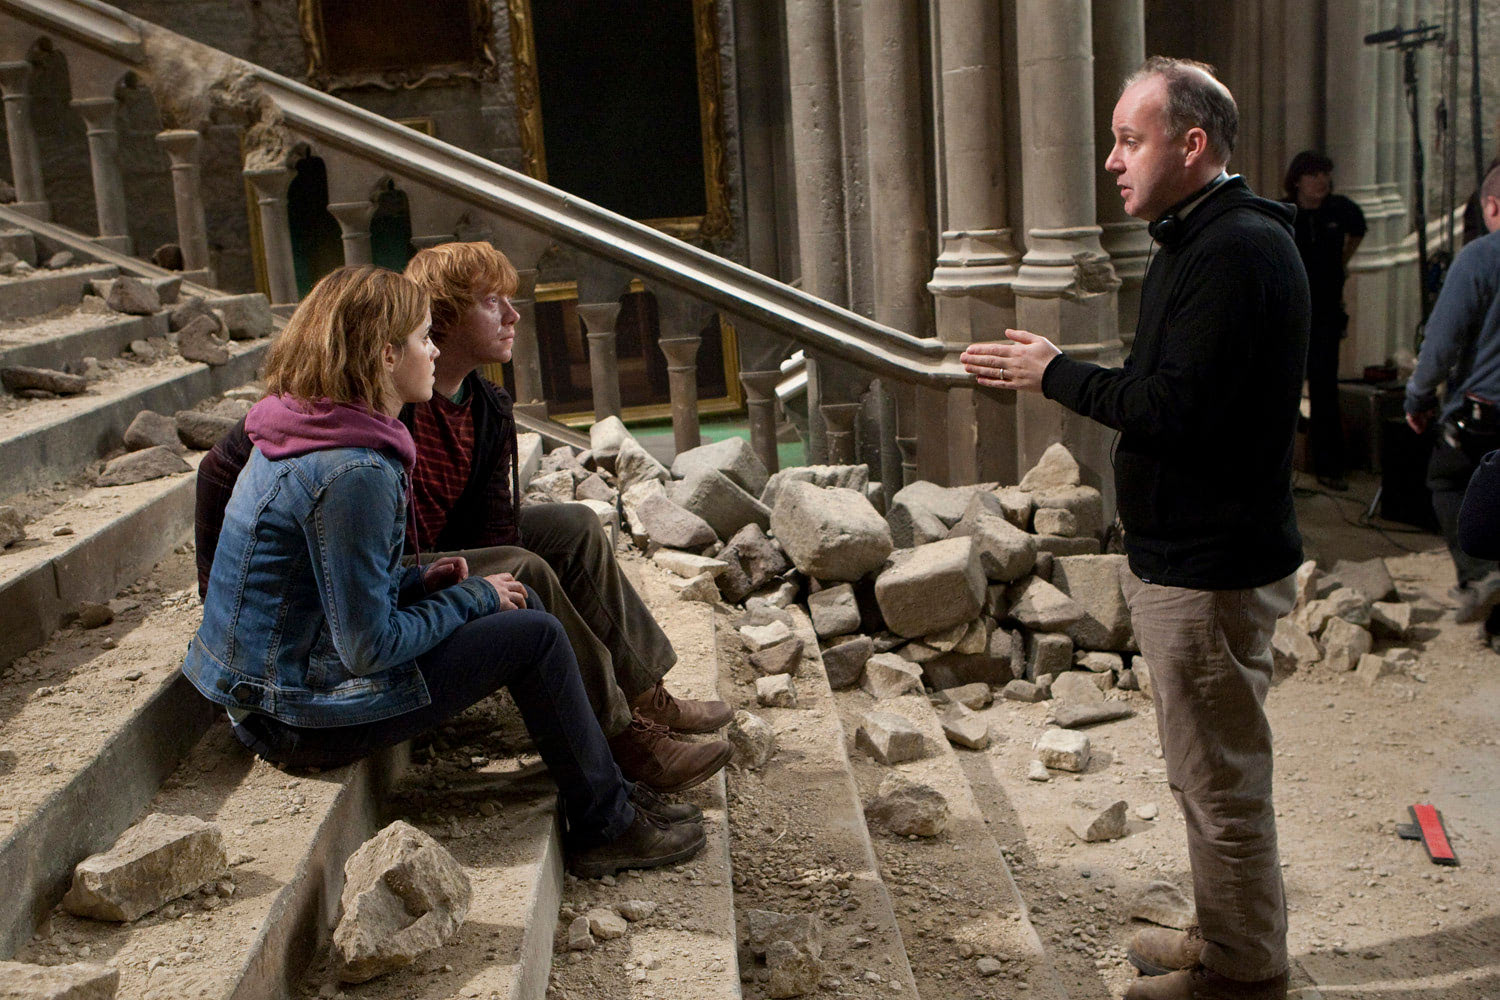 David Yates directs Emma Watson and Rupert Grint